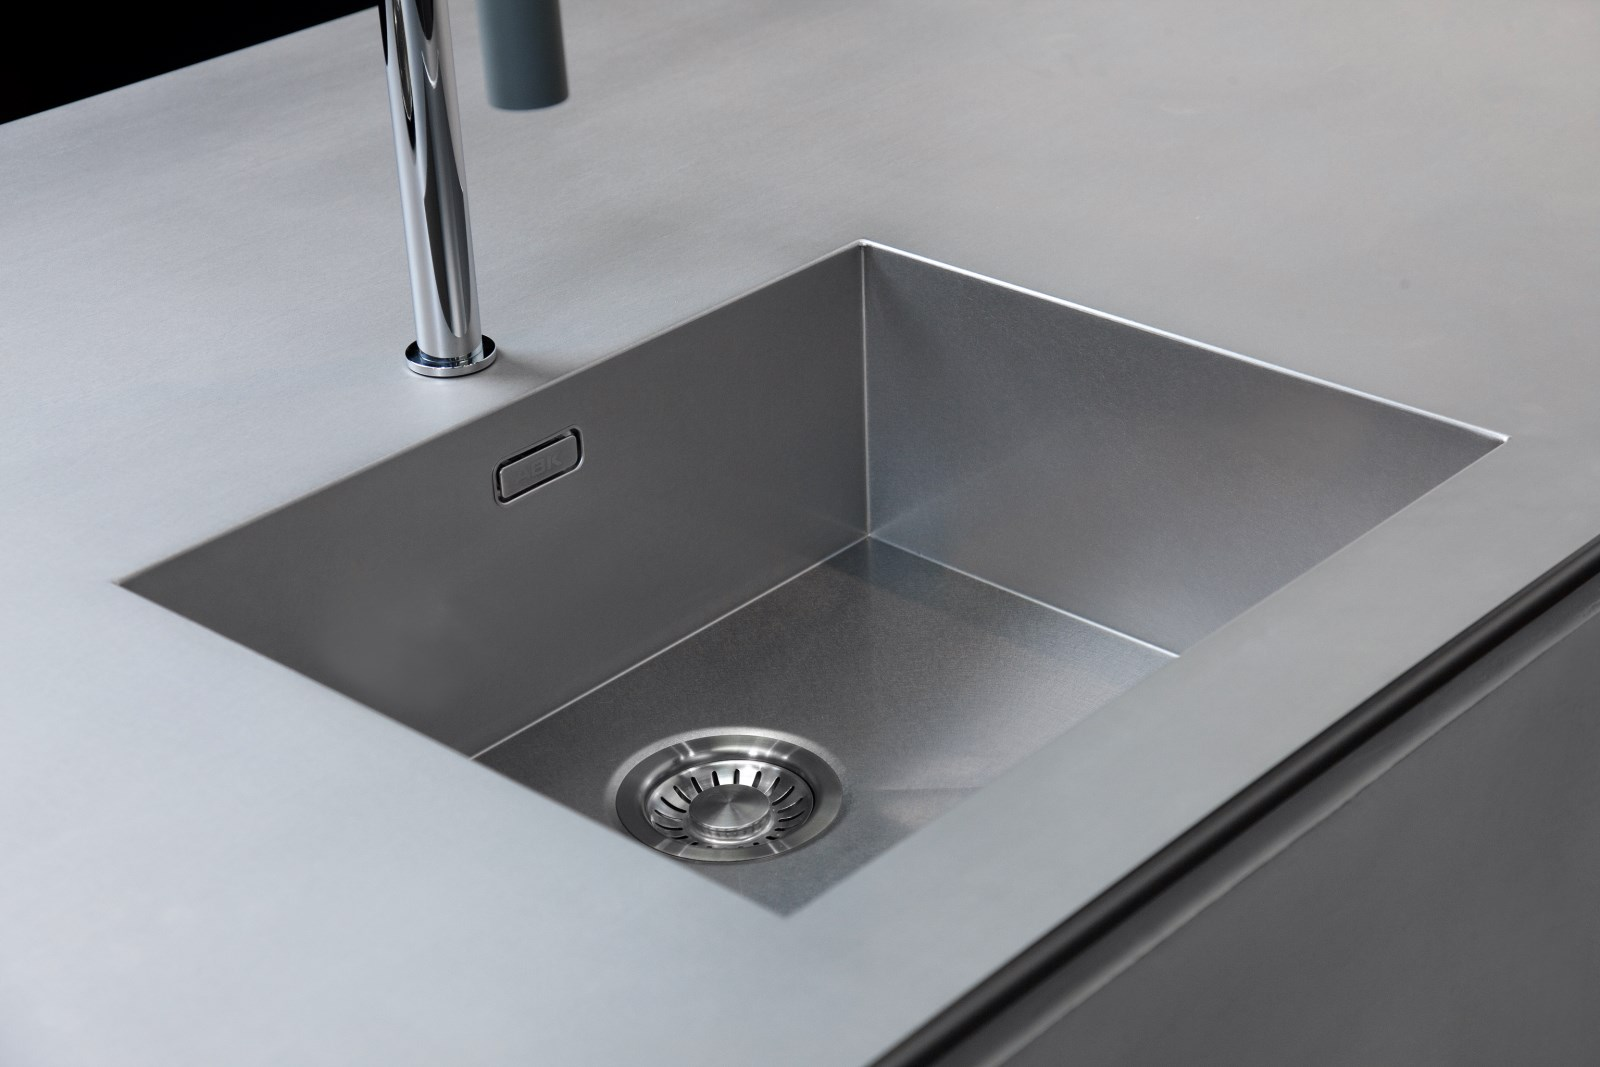 Plans De Travail Inox 4 Mm Massif Lamin S Chaud So Inox